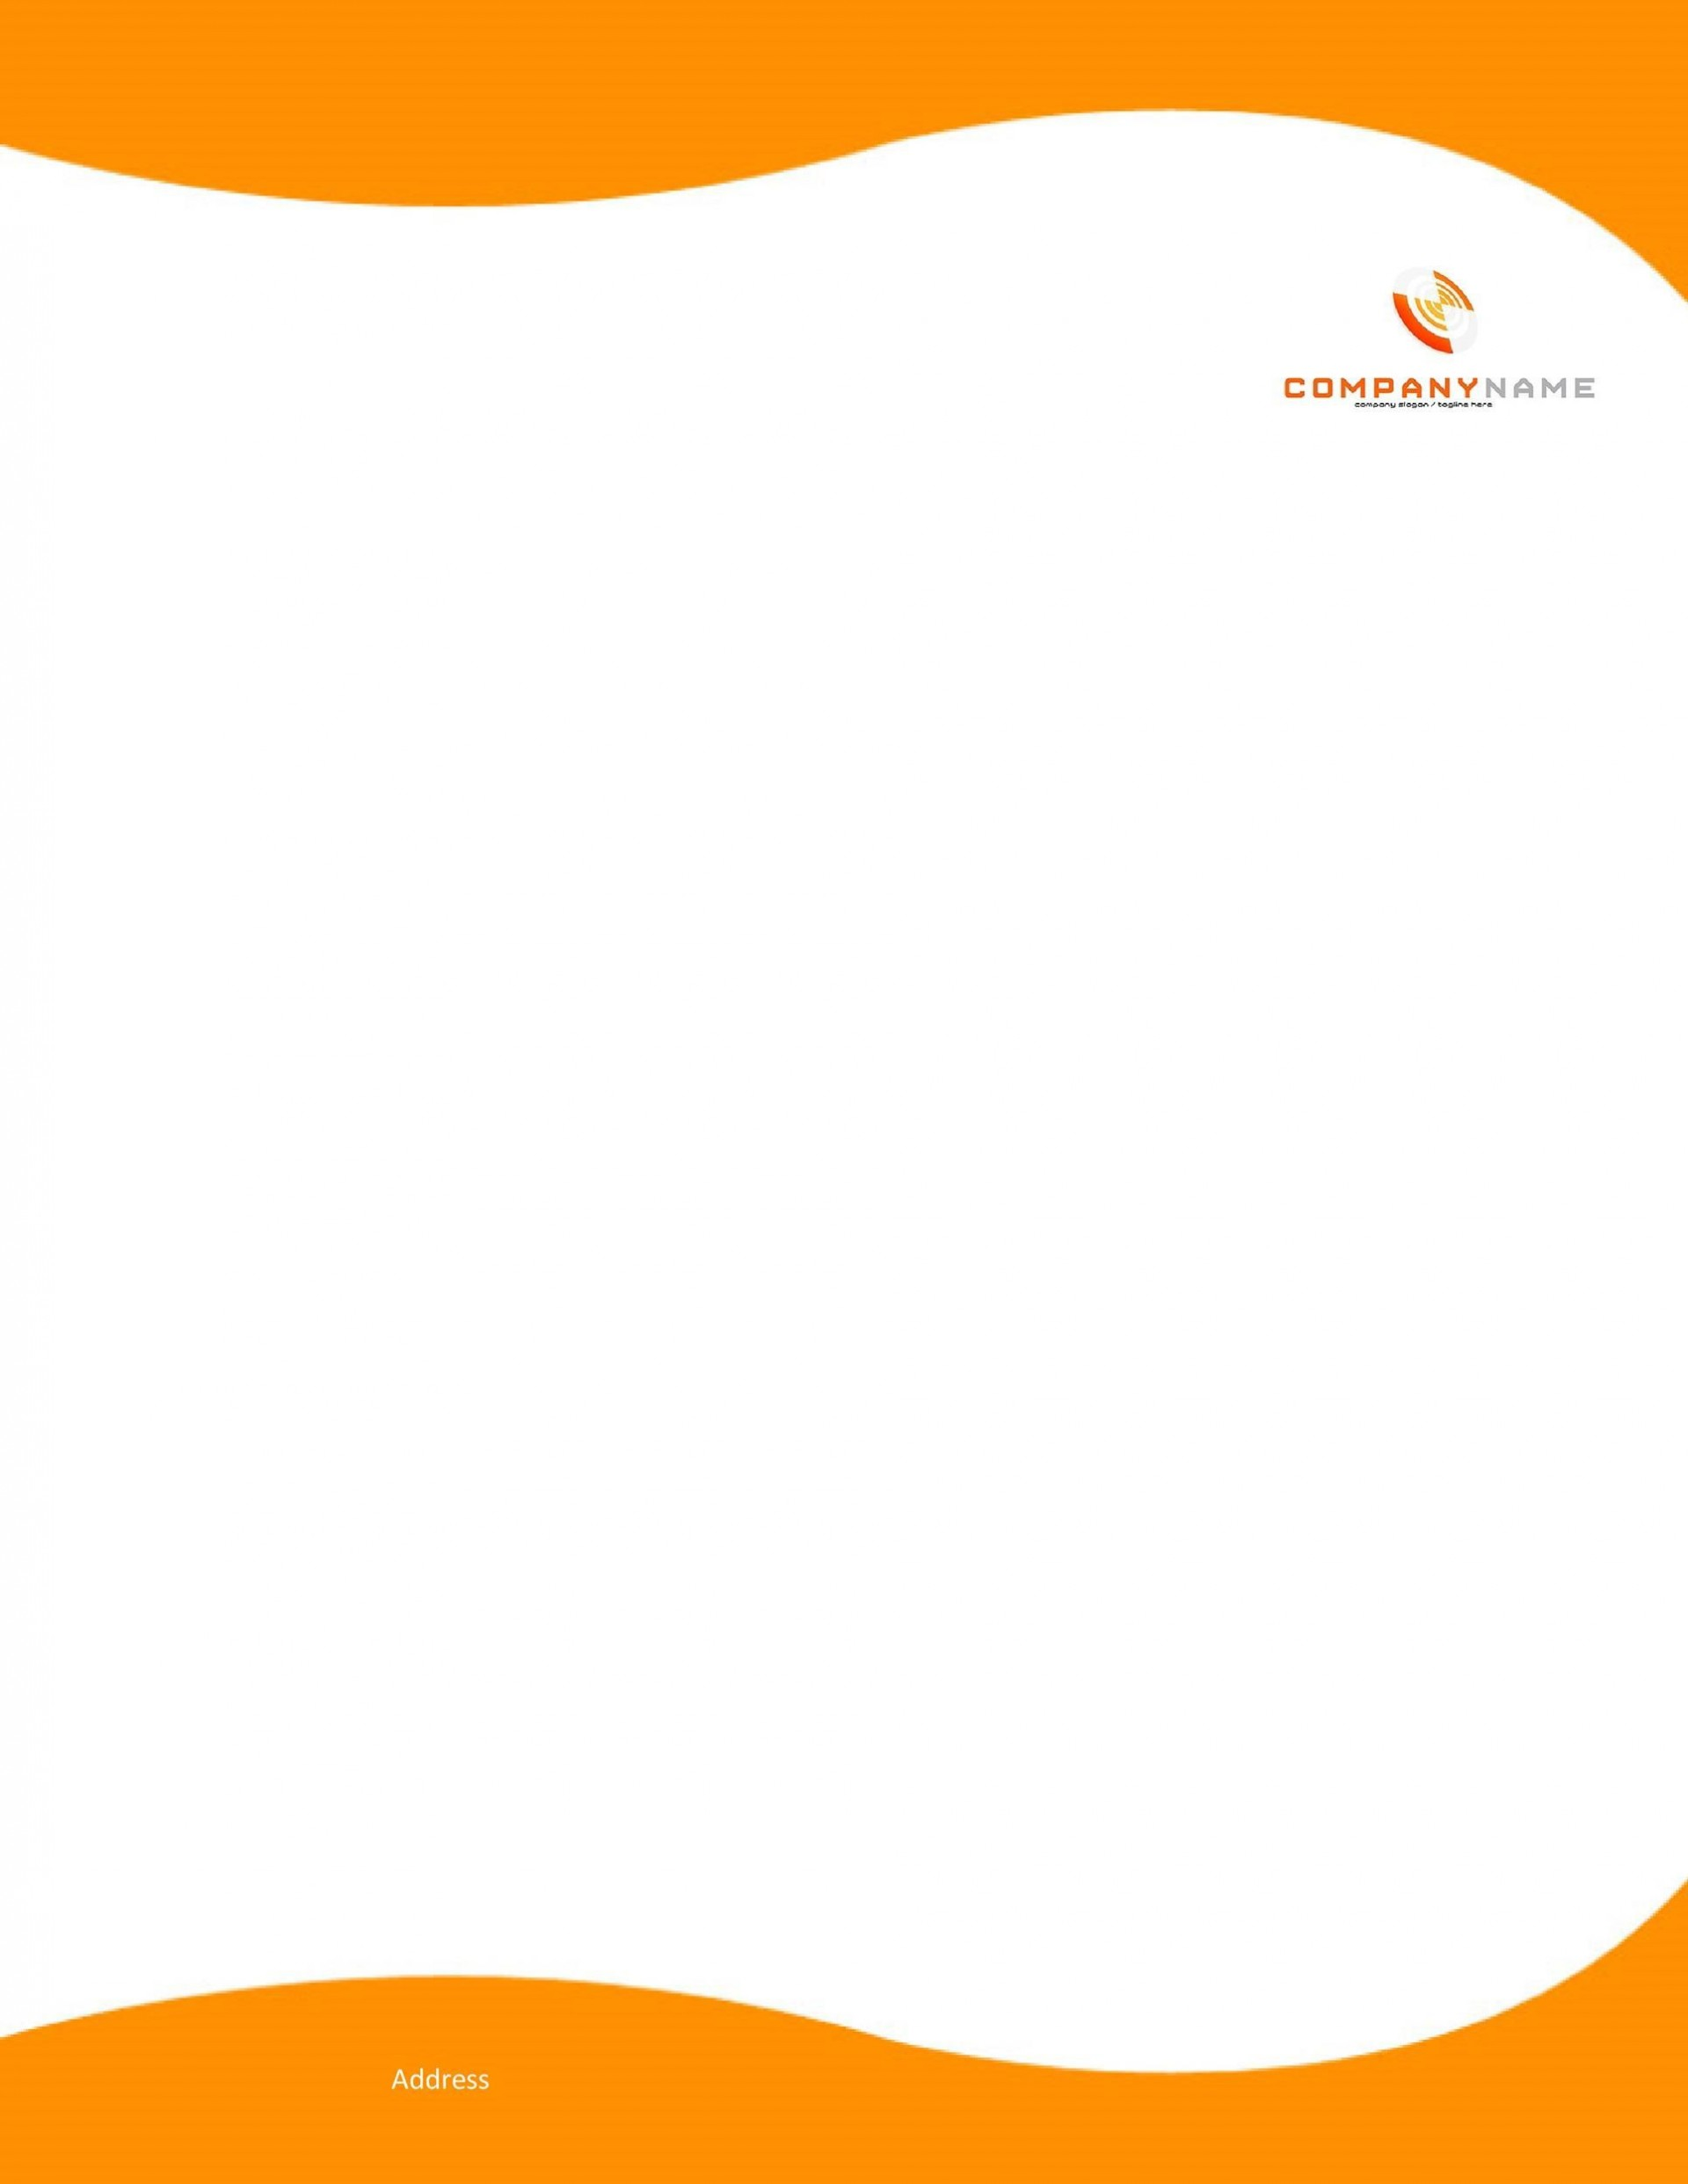 007 Fantastic Letterhead Example Free Download Design  Advocate Format Hospital In Word Pdf1920